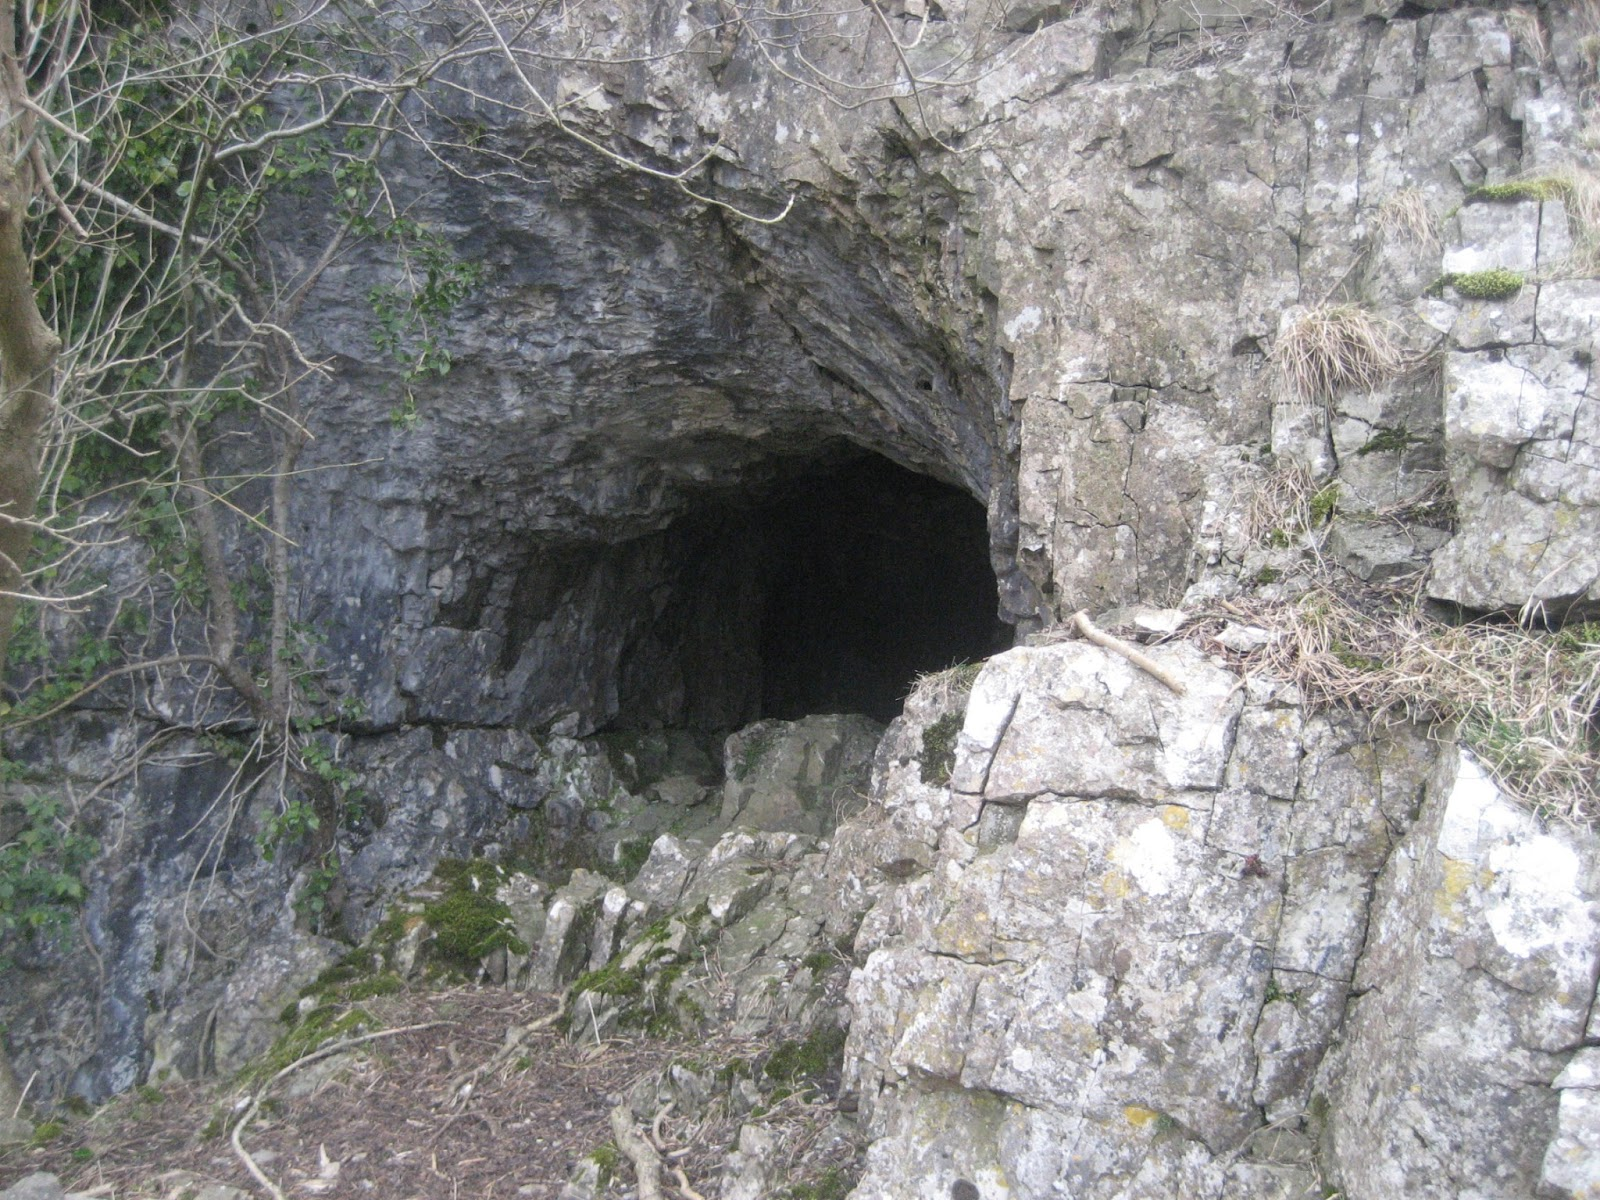 Entrance to the partly mined Buckhaw Brow Caves. Stephen Oldfield